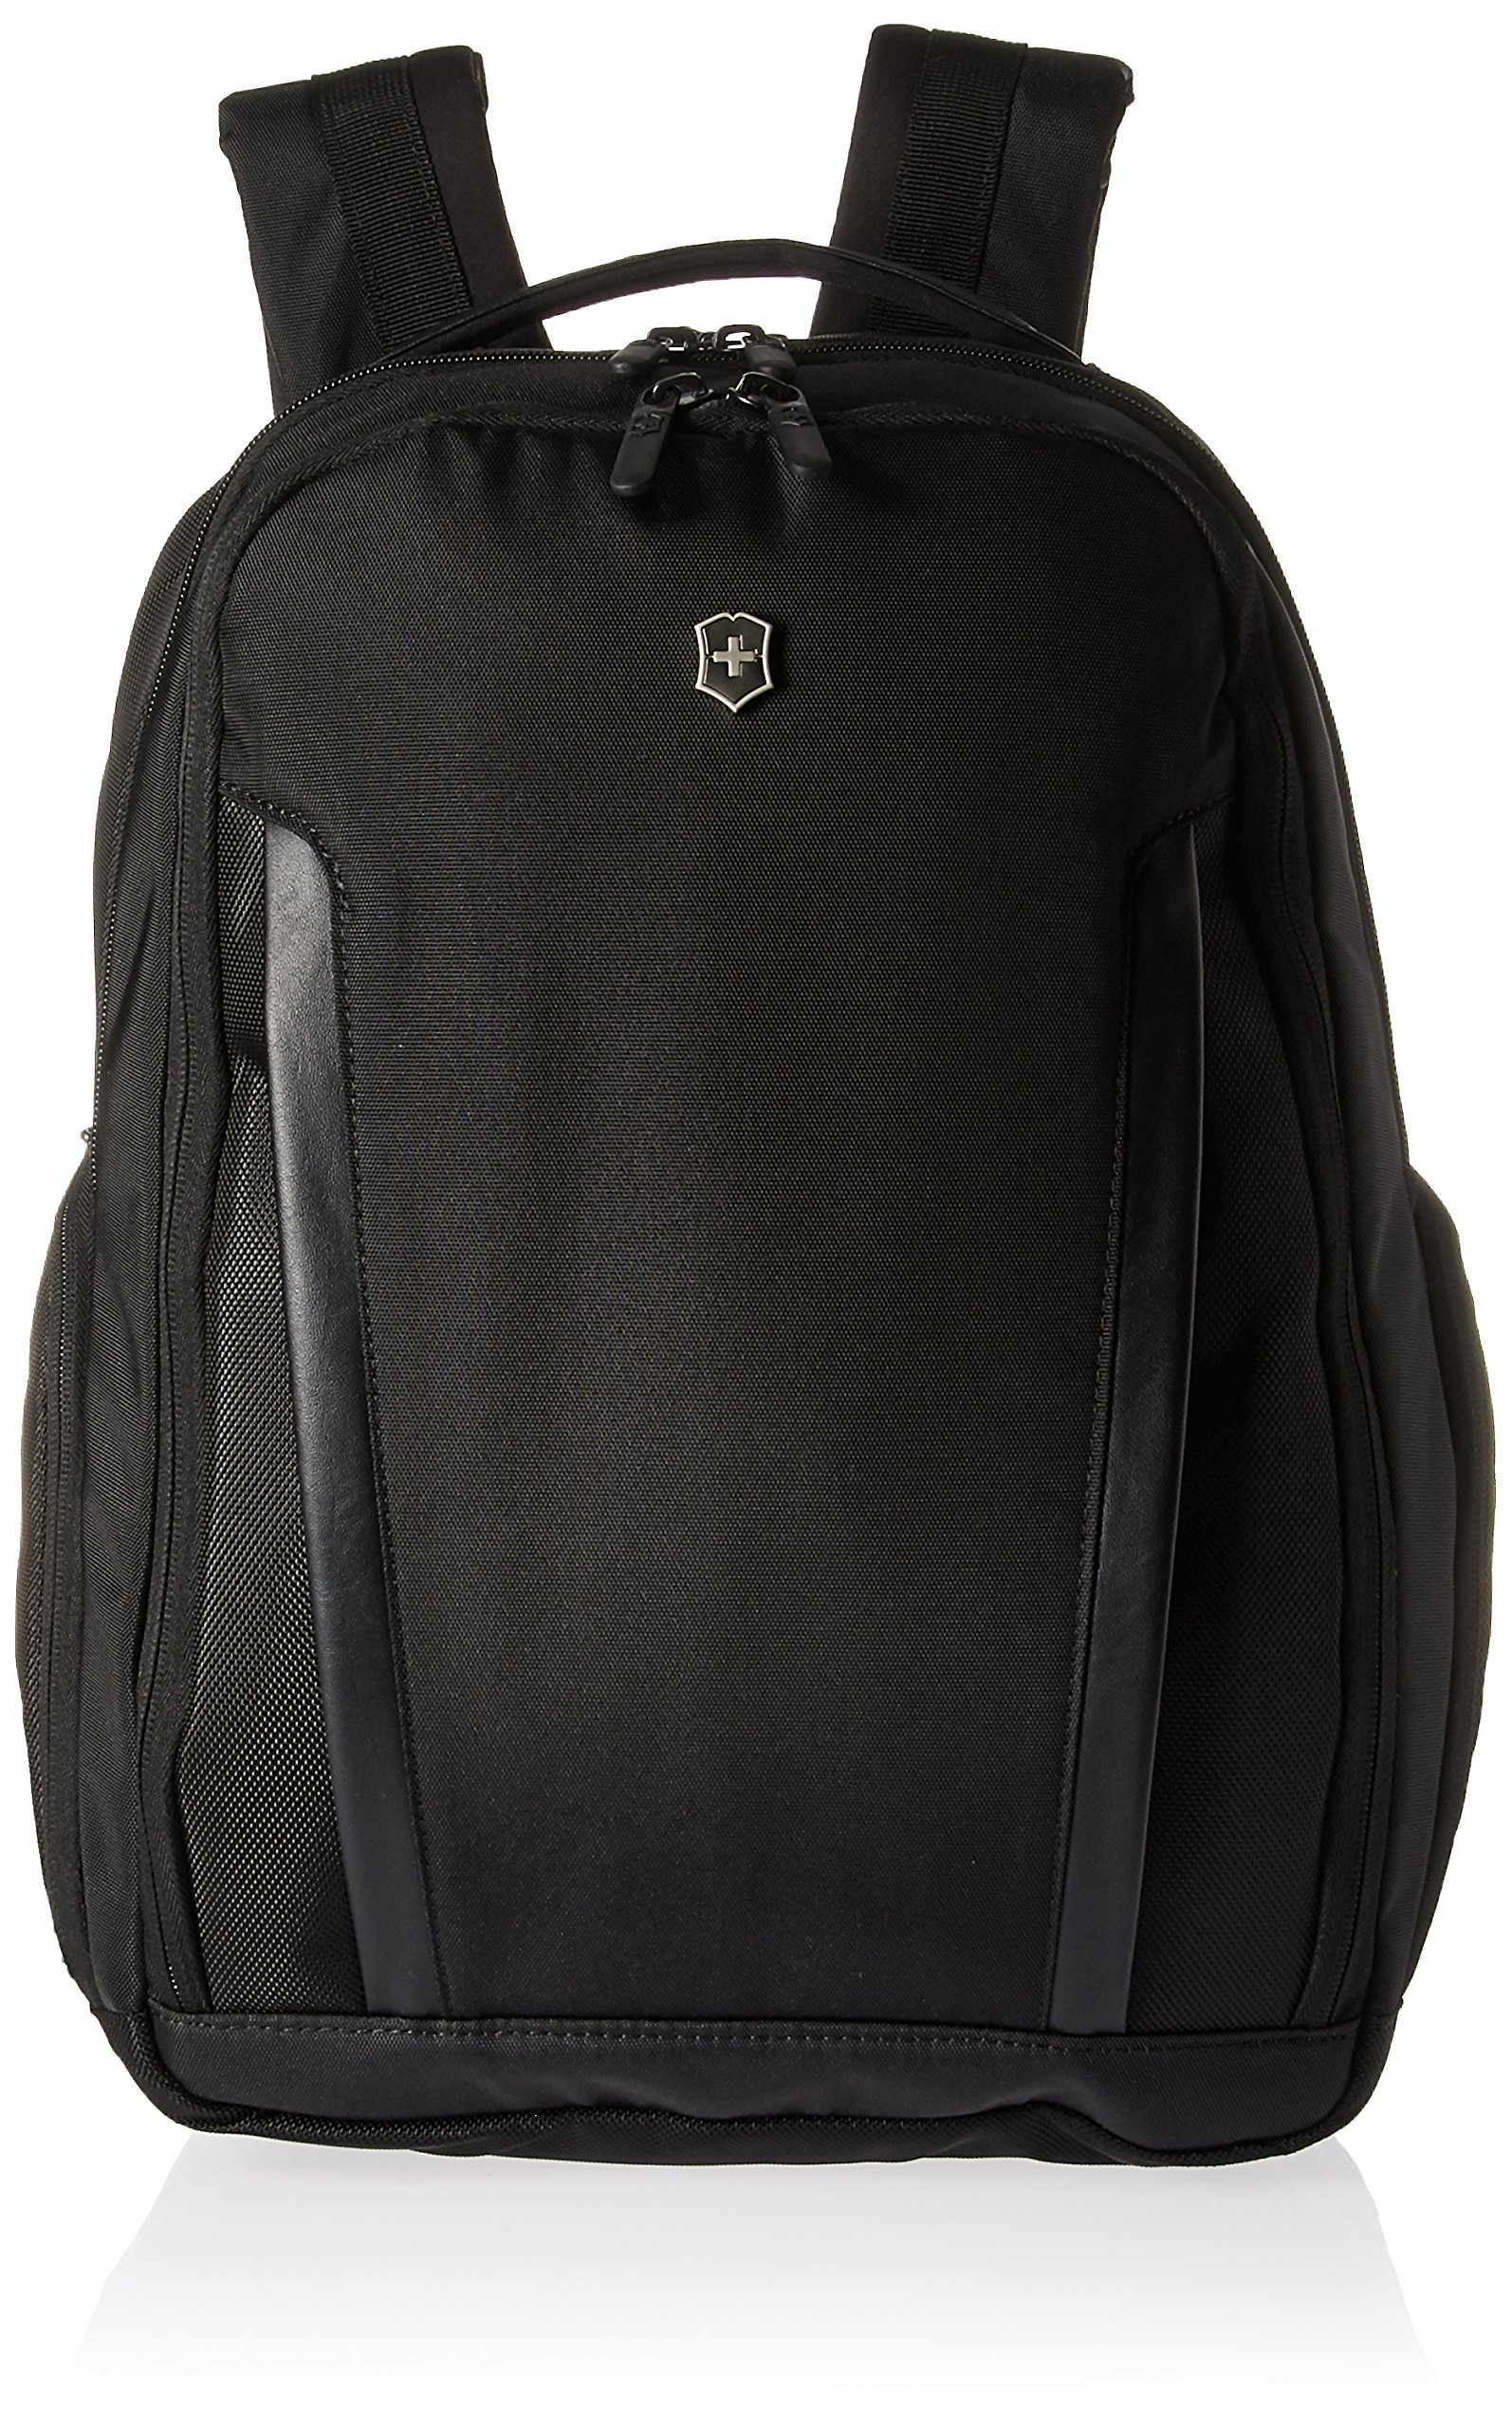 Victorinox Altmont Professional Essential Laptop Backpack, Black, One Size